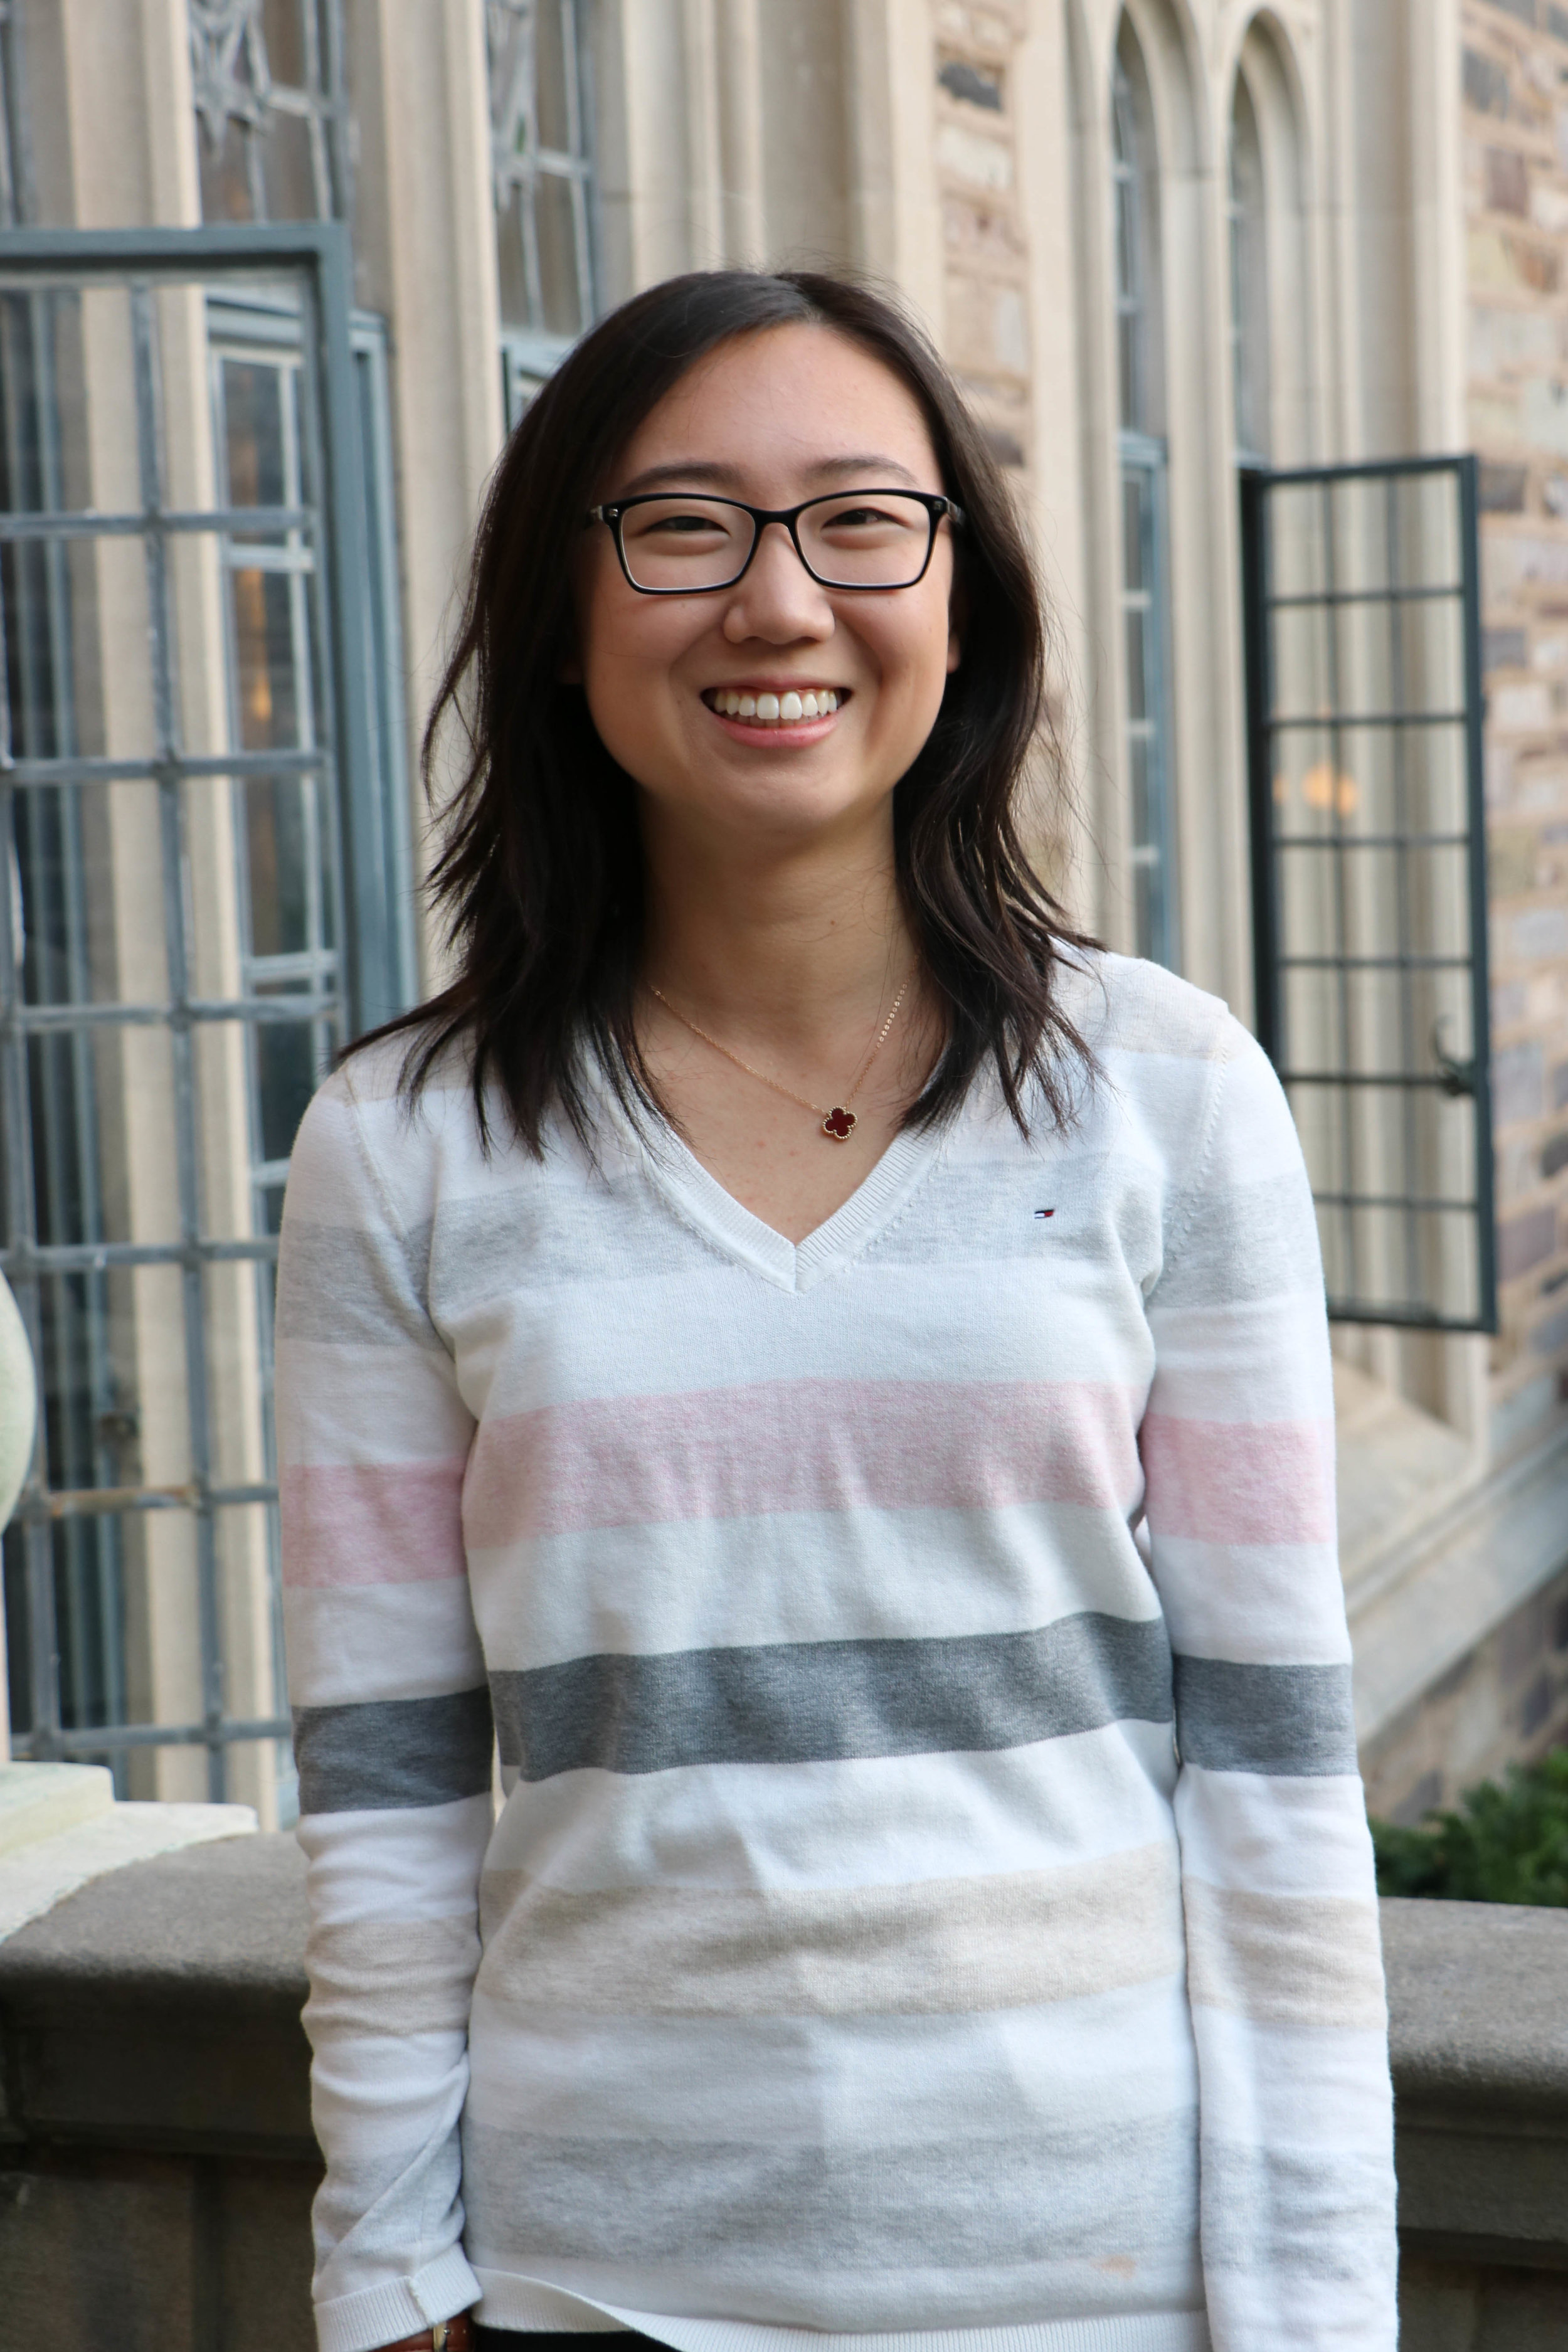 CINDY SONG   Cindy is a freshman from Rockville, Maryland. She intends to major in Economics with possible certificates in Applications of Computing and Creative Writing. Having visited China many times throughout her life, she wants to learn more about the economic and business relations between U.S. and China. Outside of PUCC, Cindy is involved in Envision Conference, Chinese Students Association, and KoKo Pops Dance Company. She would love to study abroad in China or another East Asian country during her time at Princeton.